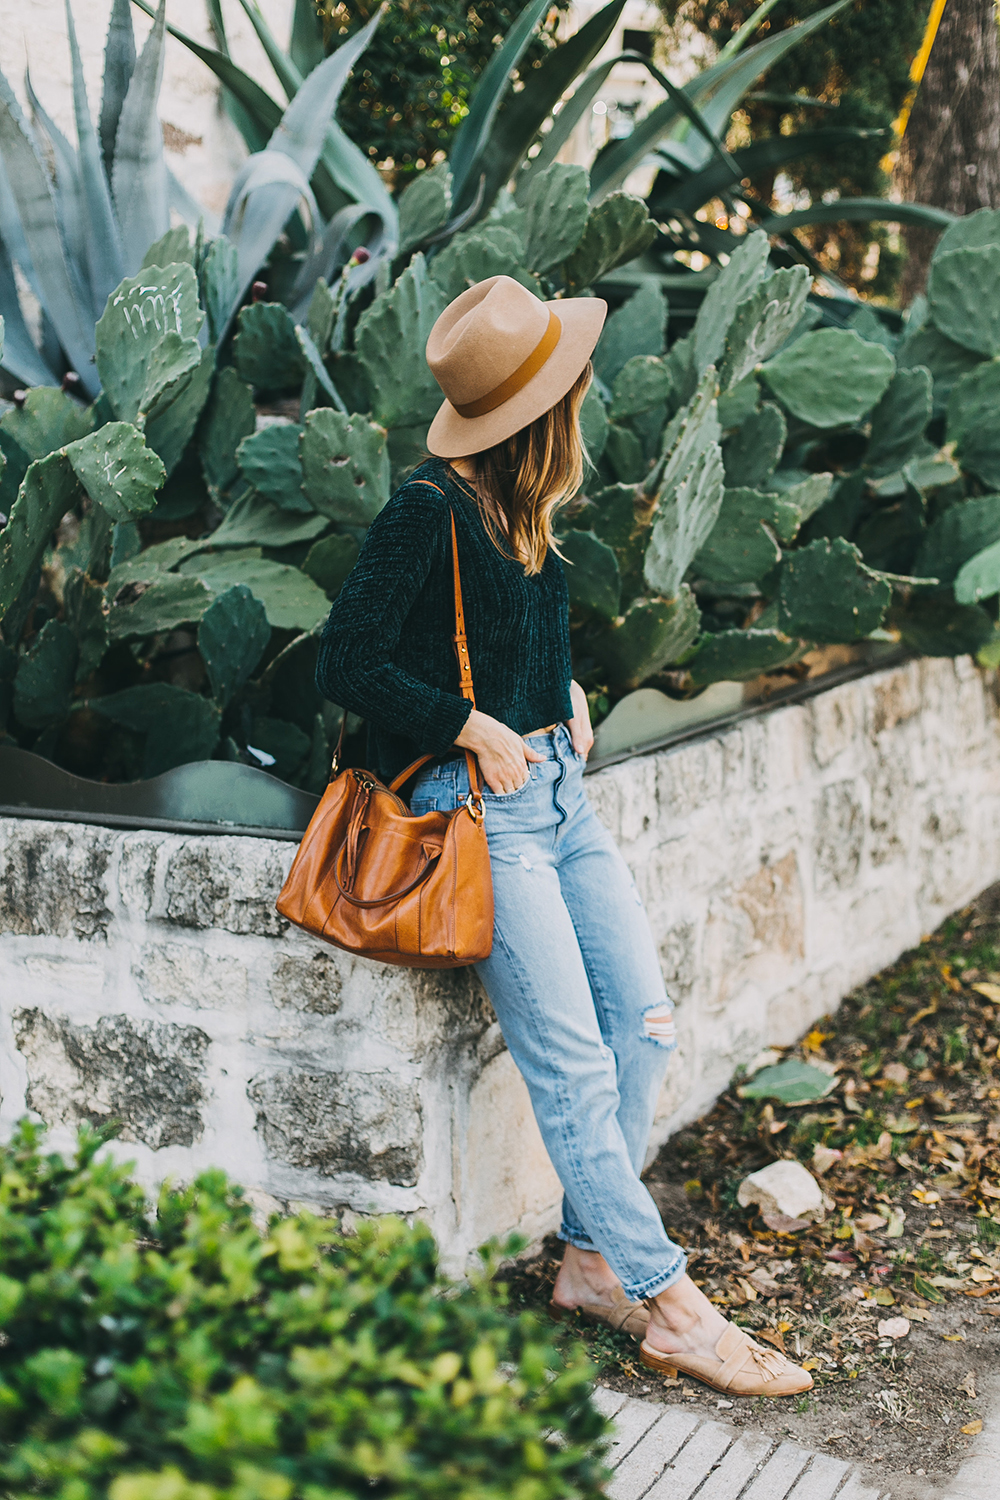 livvyland-blog-olivia-watson-austin-texas-fashion-style-blogger-teal-cropped-sweater-tassel-slides-2